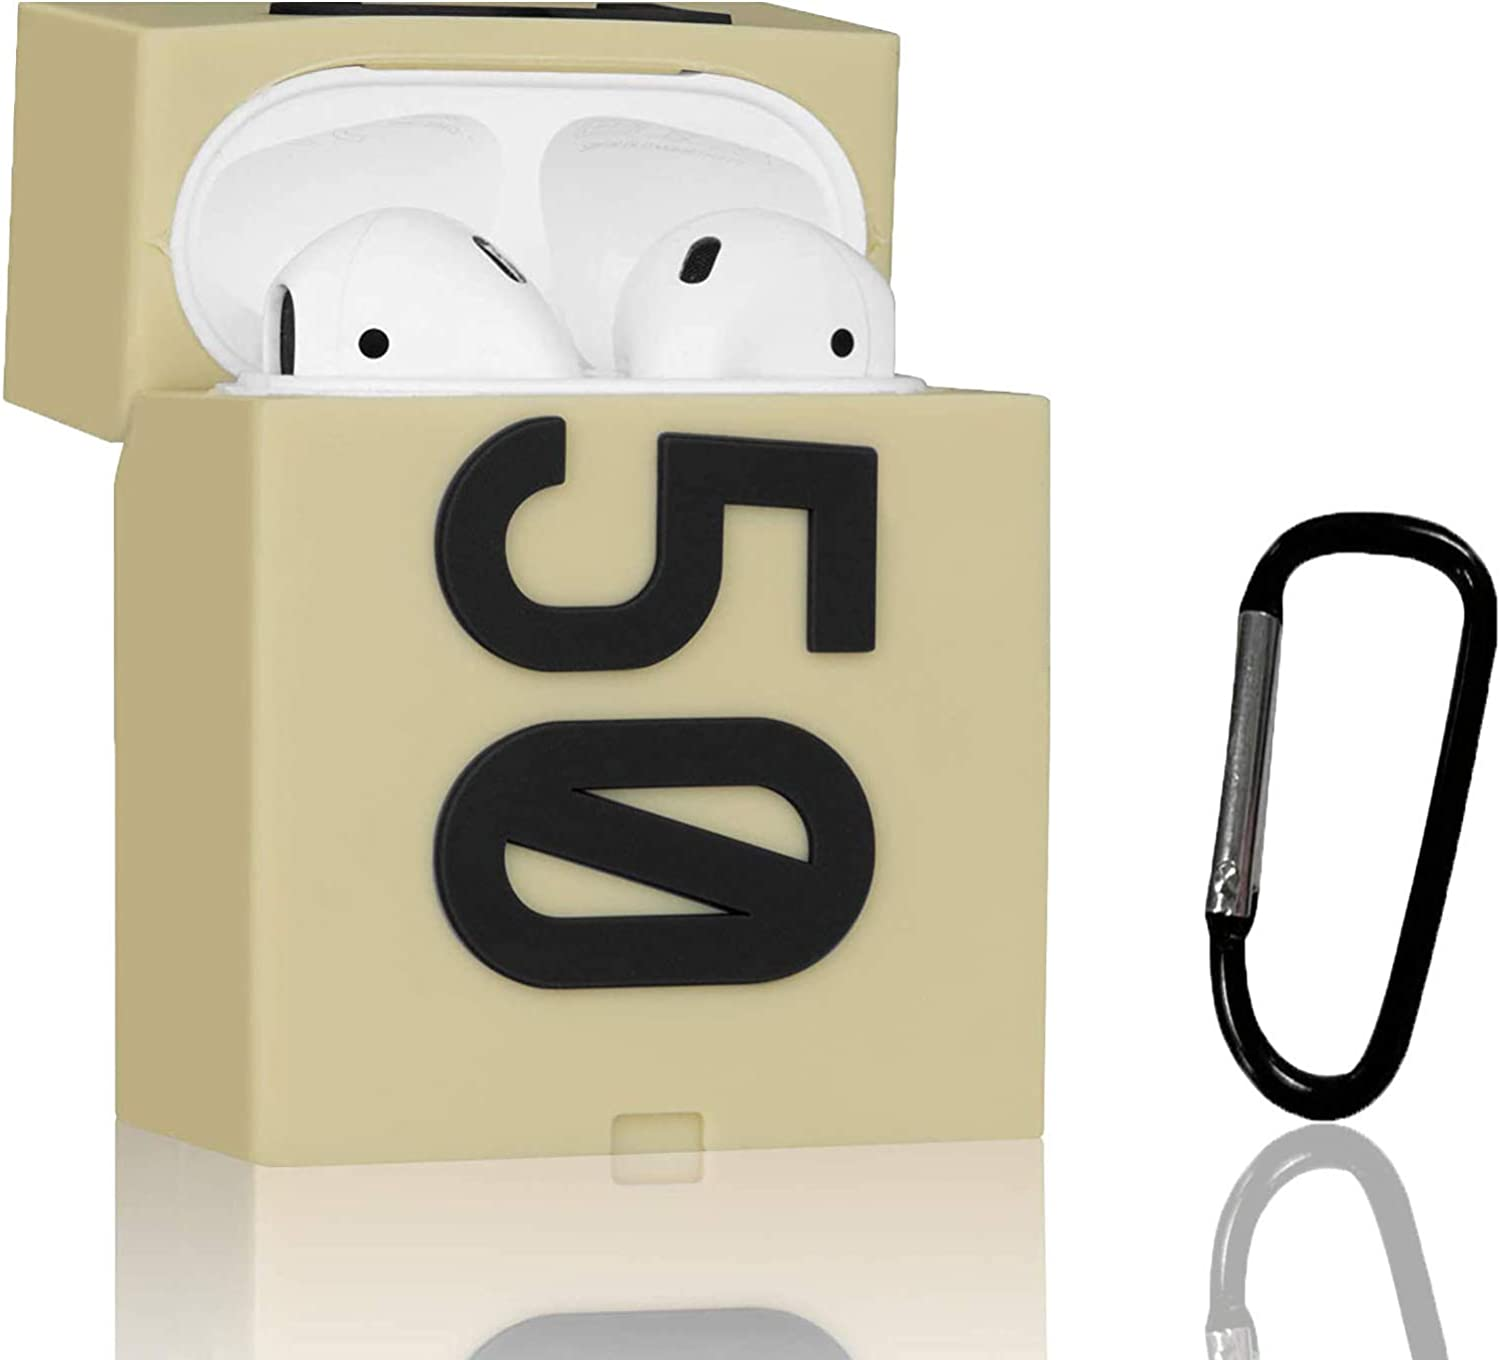 Airpods Case, Silicone Sneaker 350 Shoe Box Case Compatible for Apple Airpods 2/1 , Shockproof Airpods Case Cover Accessories with Keychain for Kids Girls Teens Boys Men Women